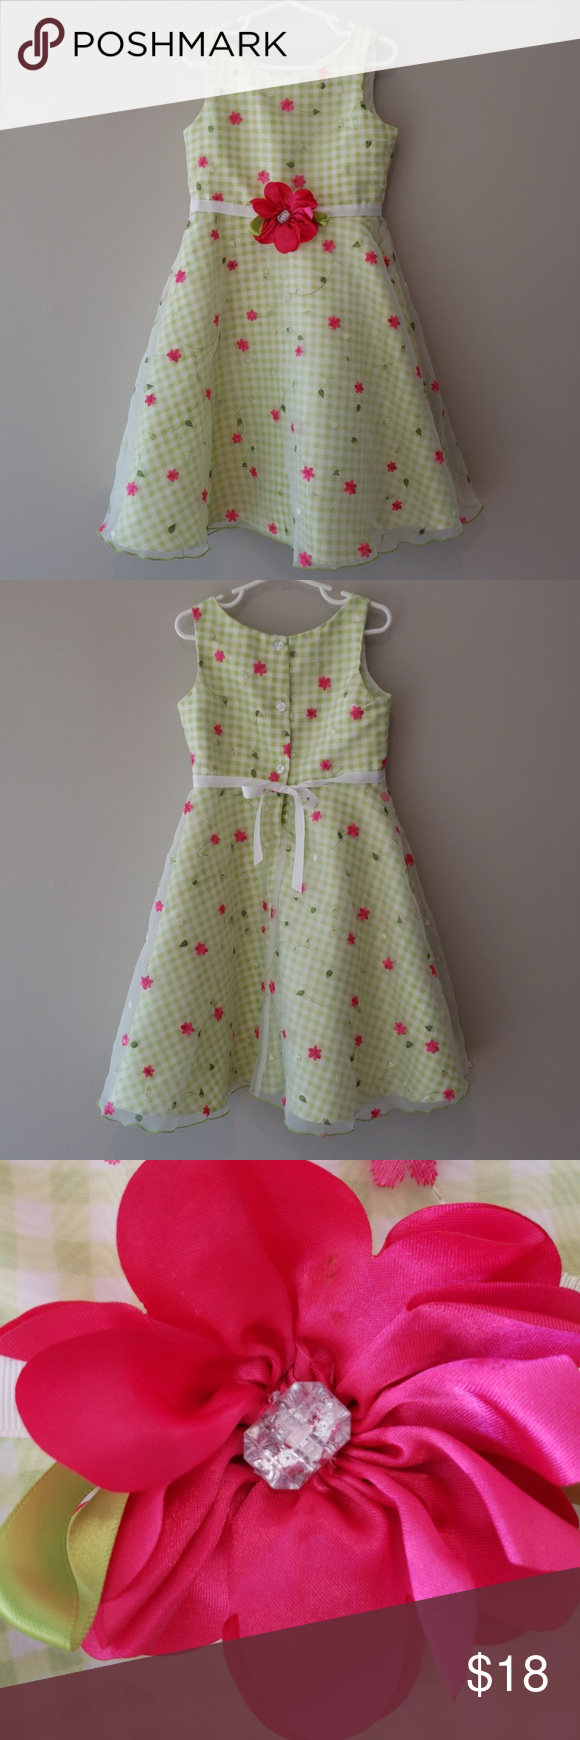 Kidsgingham dress with floral overlay in my posh picks